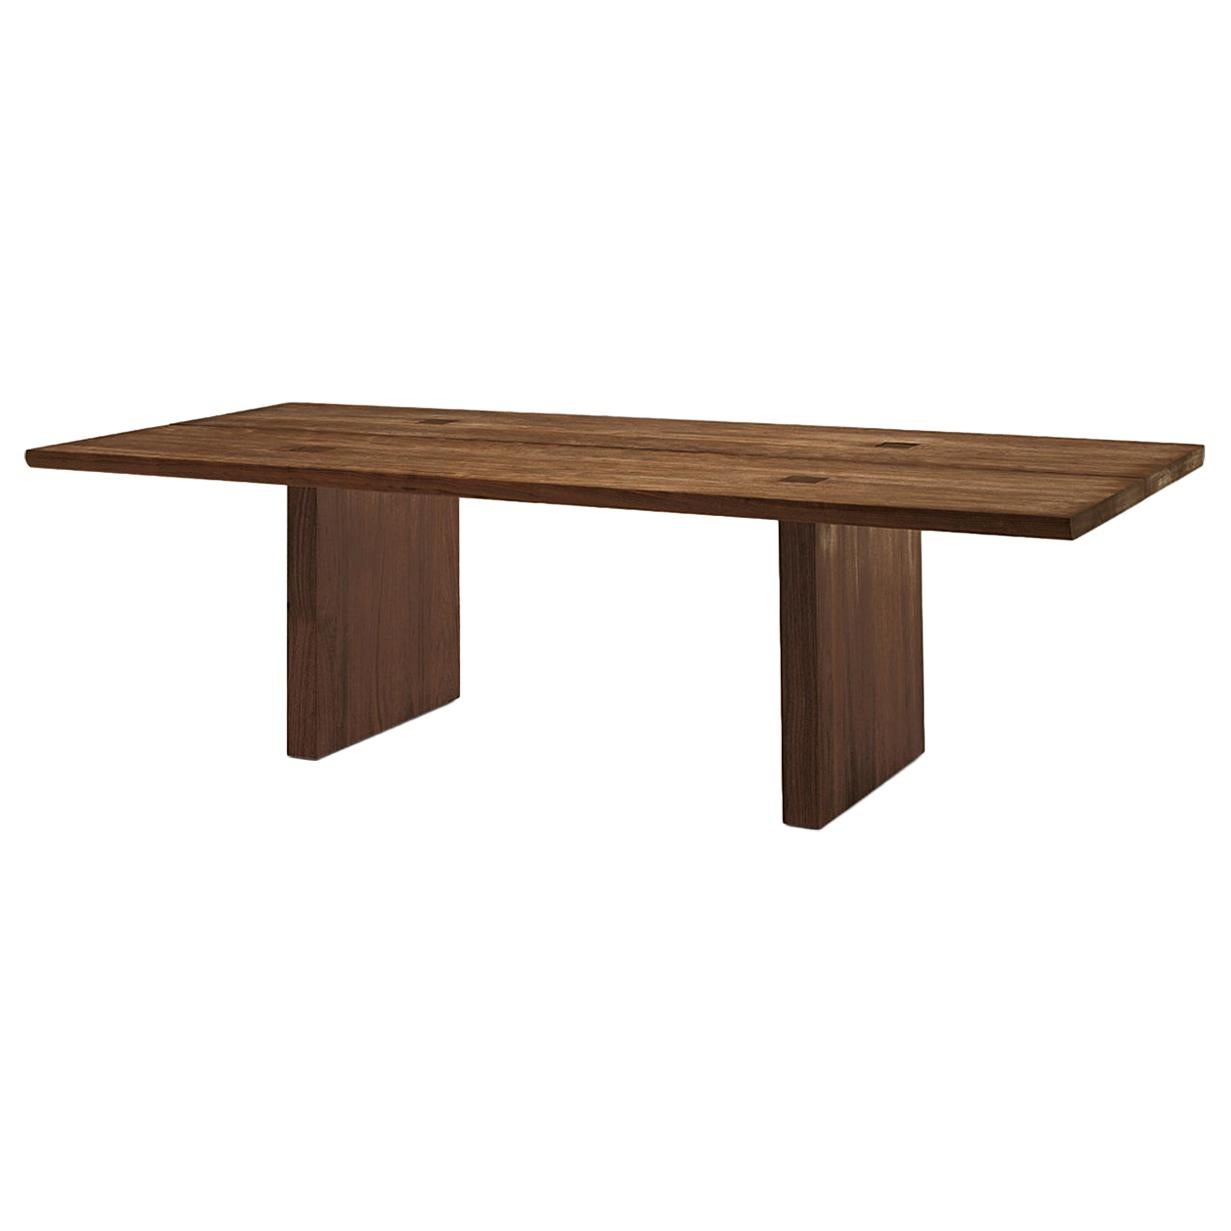 Theos Dining Table